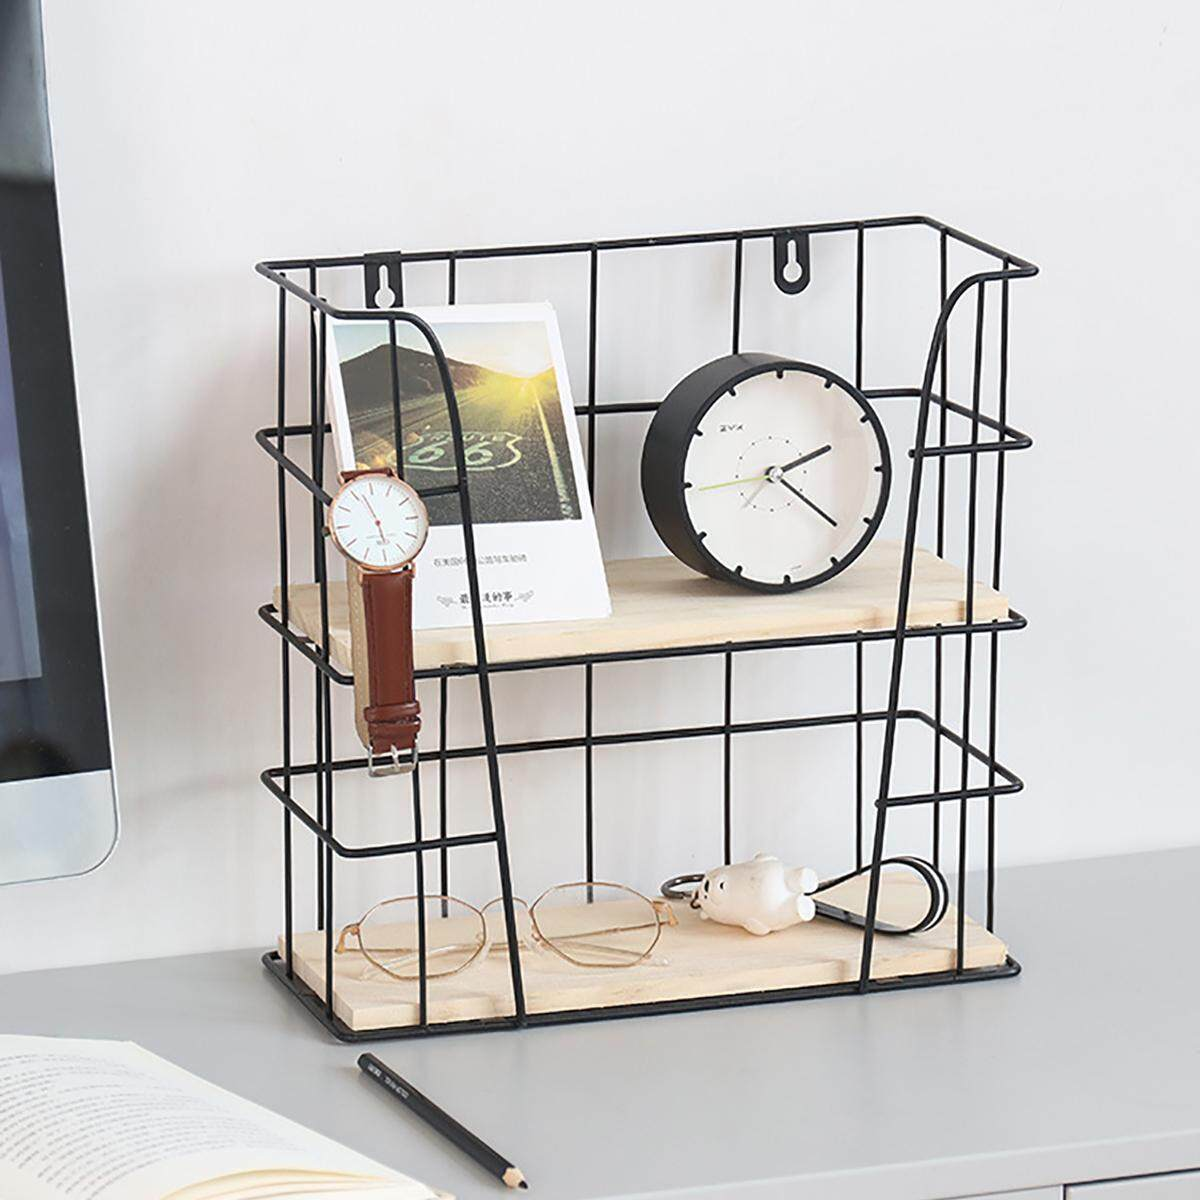 2 Tier Floating Iron Shelf Wooden Display Storage Wall Hanging Rack Home Decor